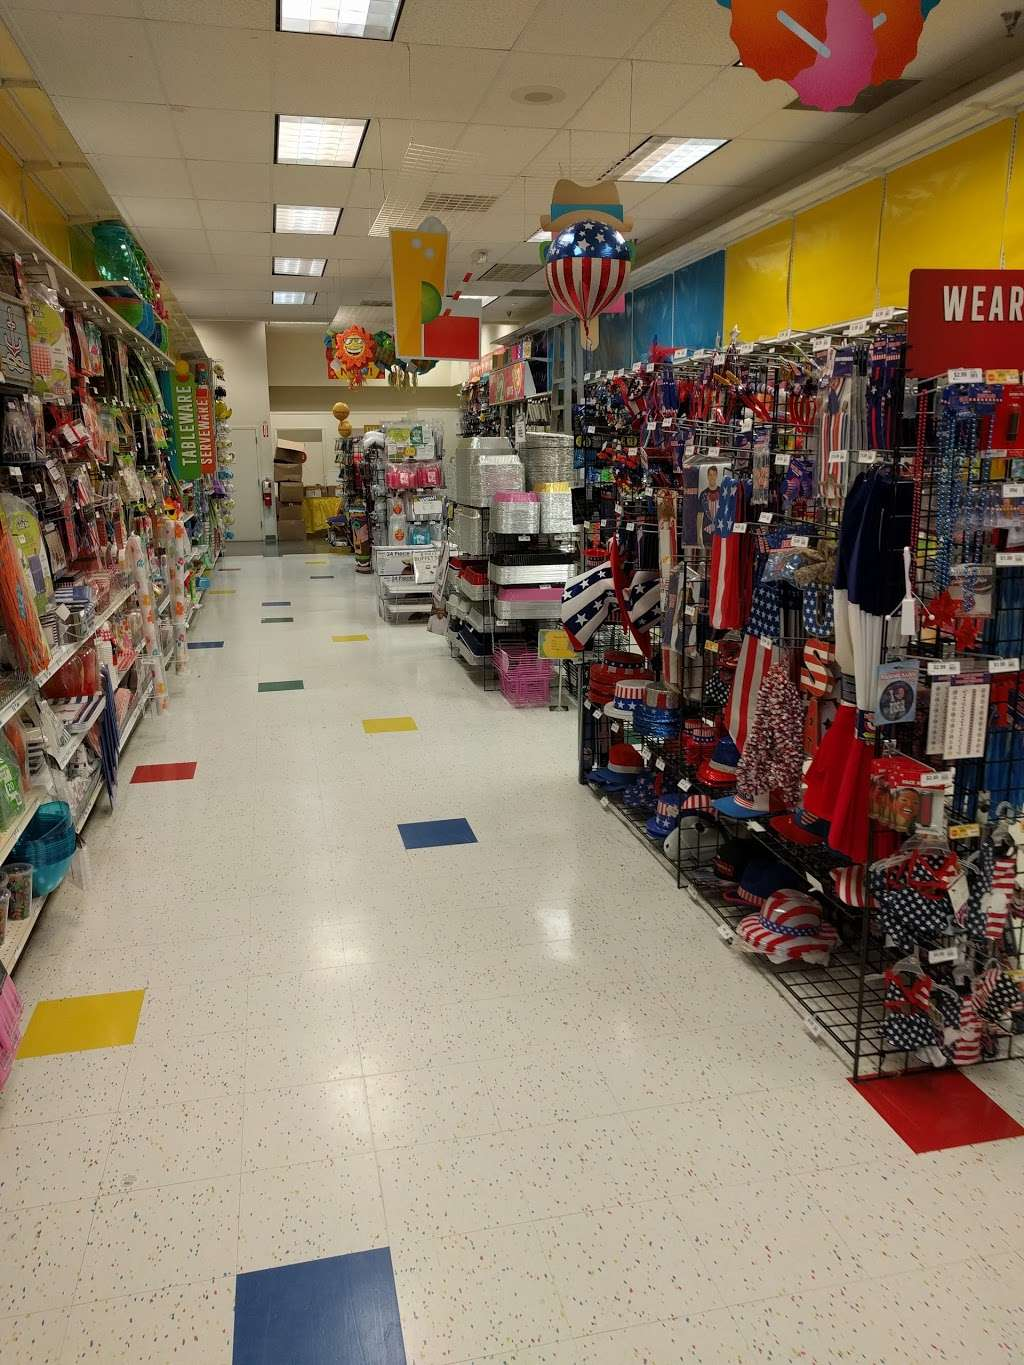 Party City - clothing store  | Photo 3 of 10 | Address: 530 Consumer Square, Mays Landing, NJ 08330, USA | Phone: (609) 677-9124